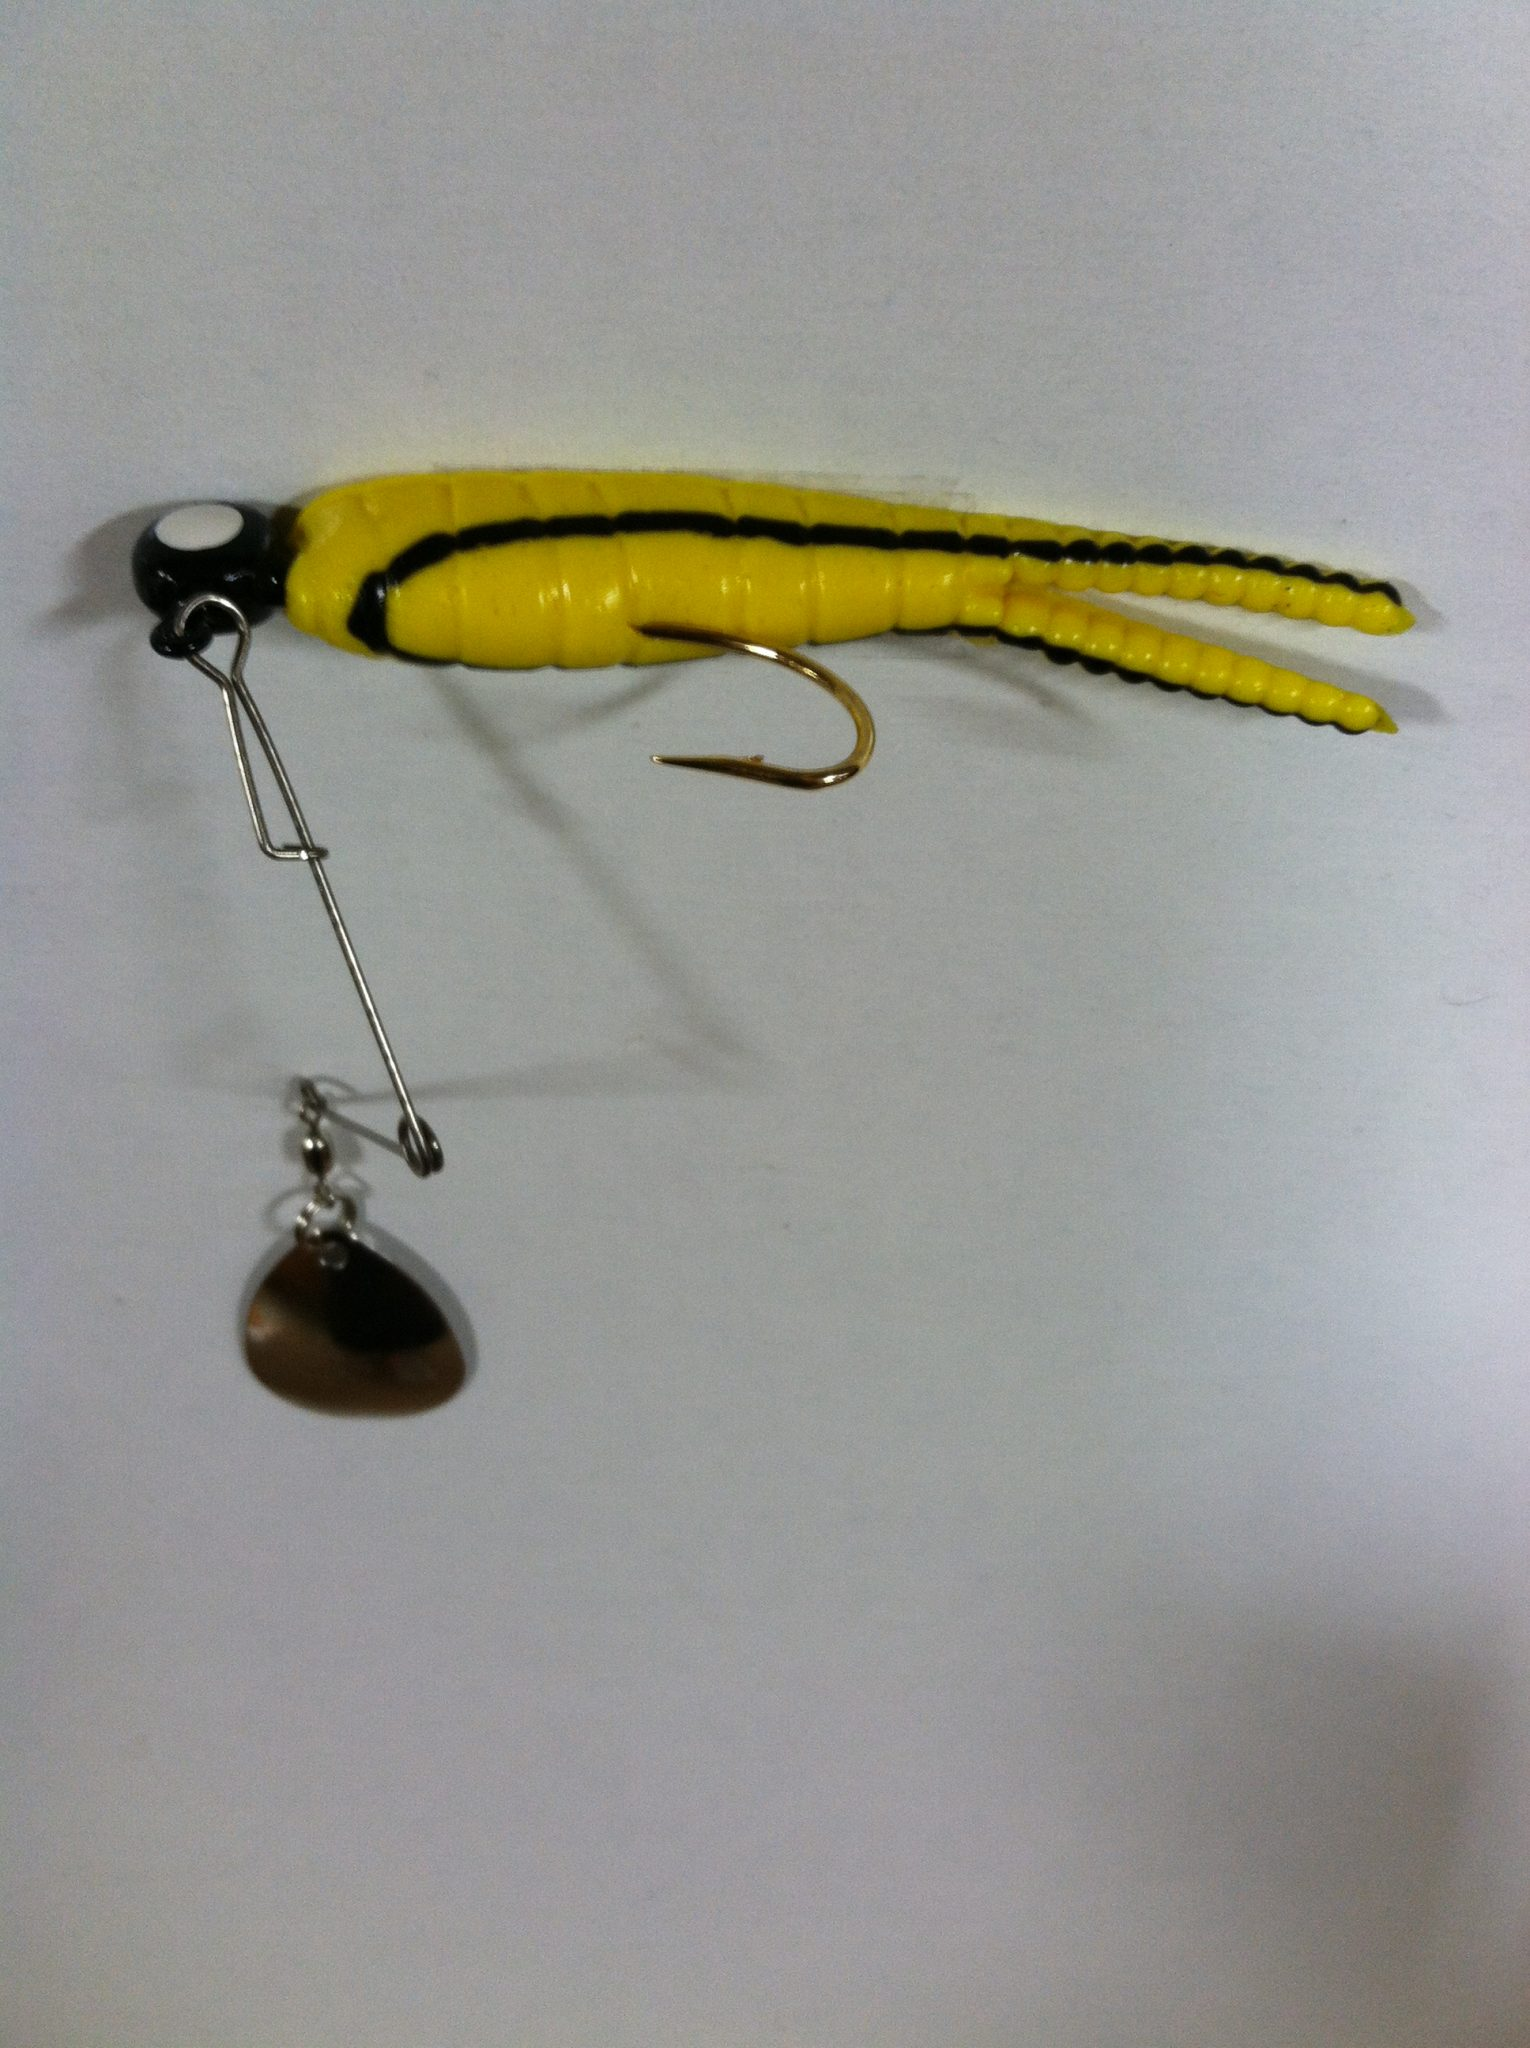 betts spin 1/4 oz. split tail